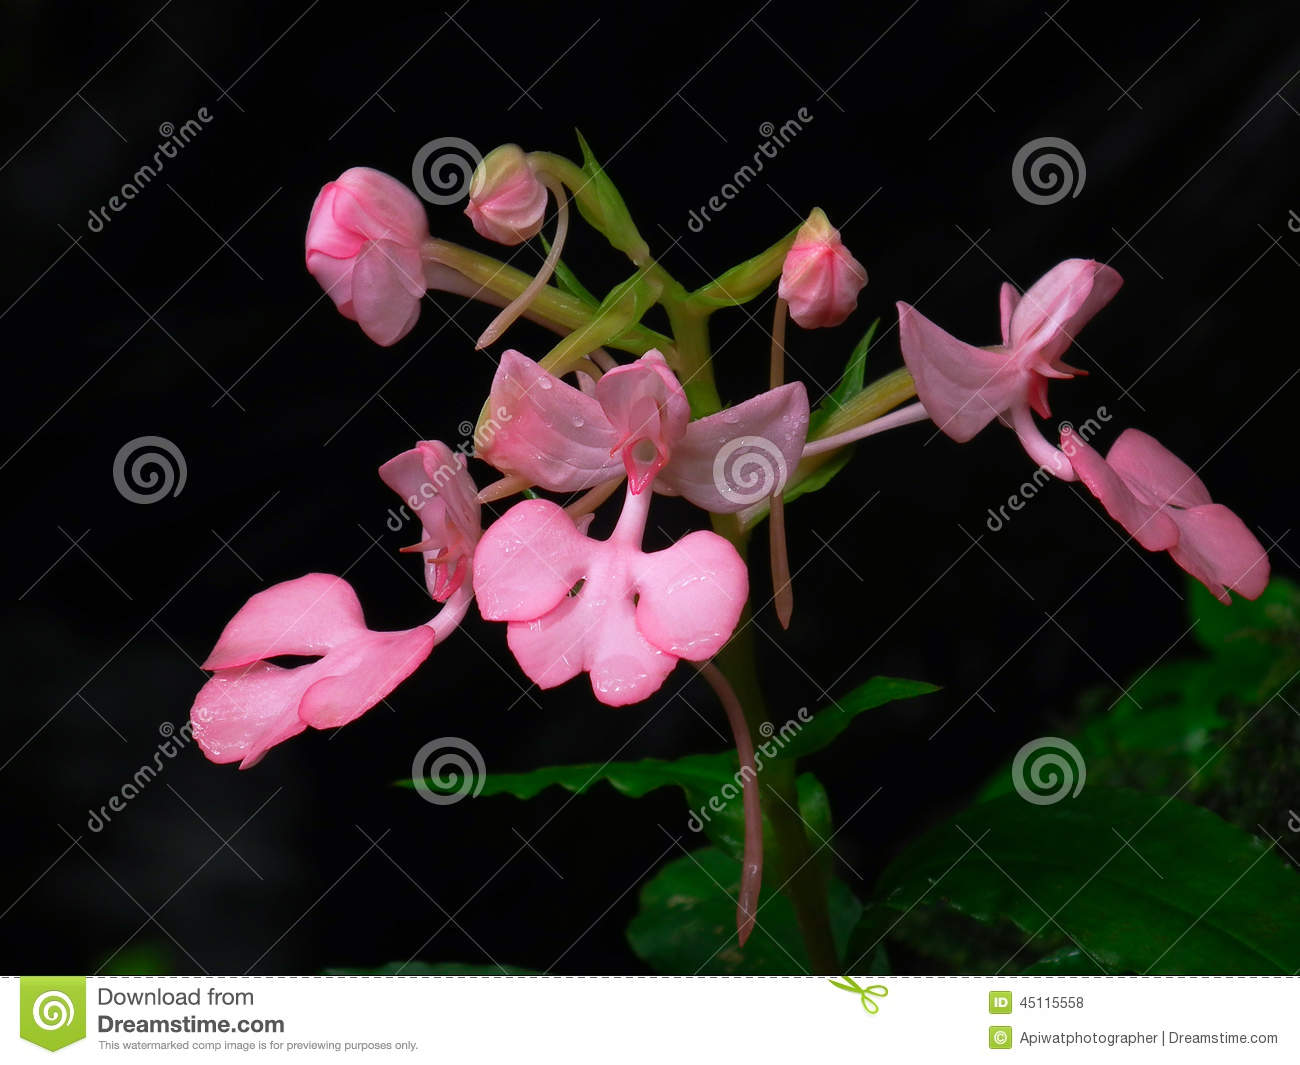 The cow lily flower stock photo image of travel forests 45115558 download the cow lily flower stock photo image of travel forests 45115558 izmirmasajfo